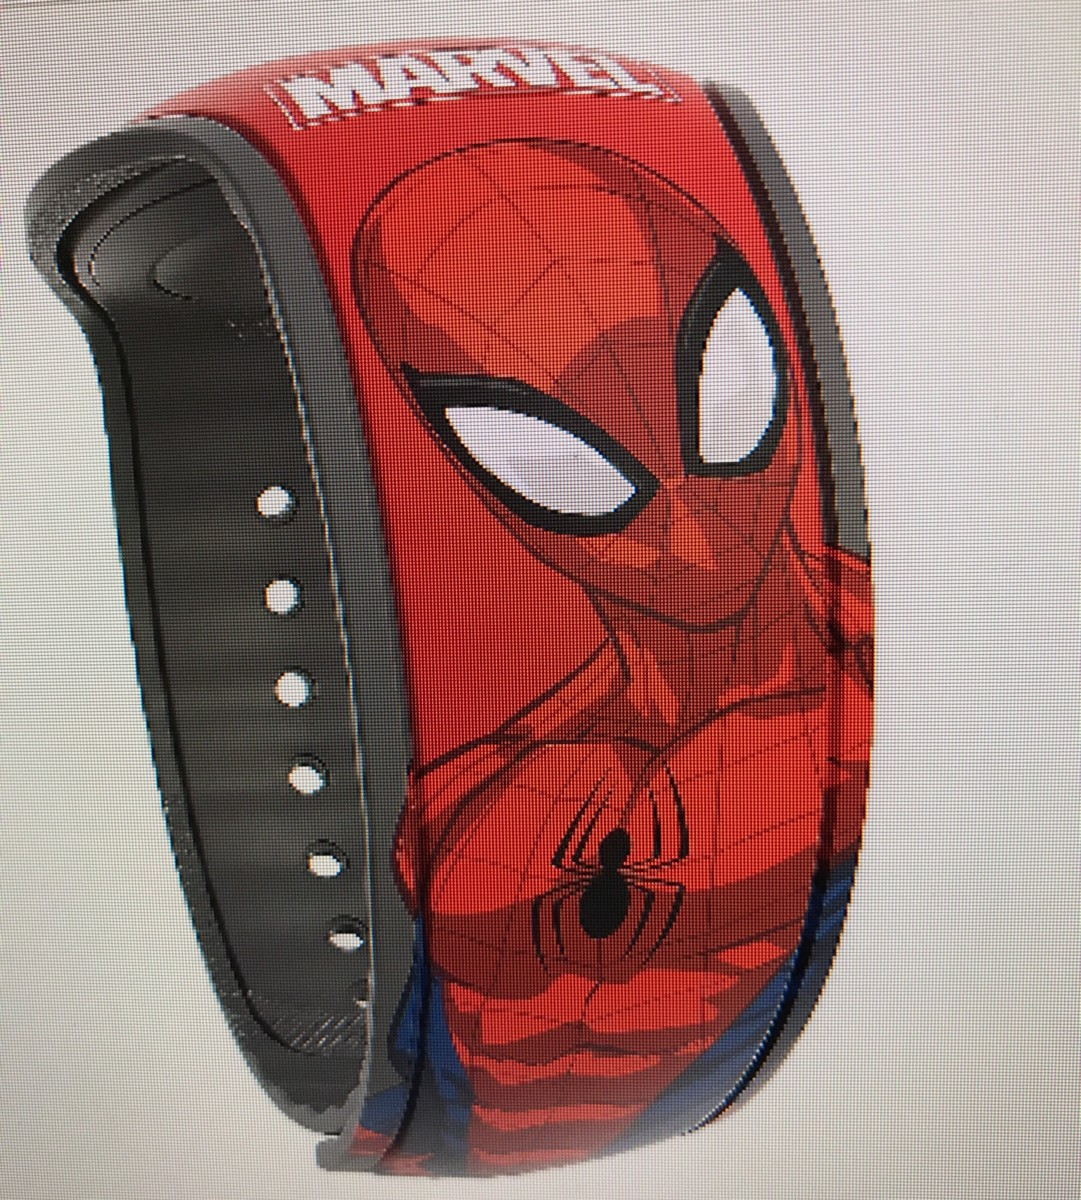 NEW! Avengers MagicBands Coming to Disney Parks September 22! 2